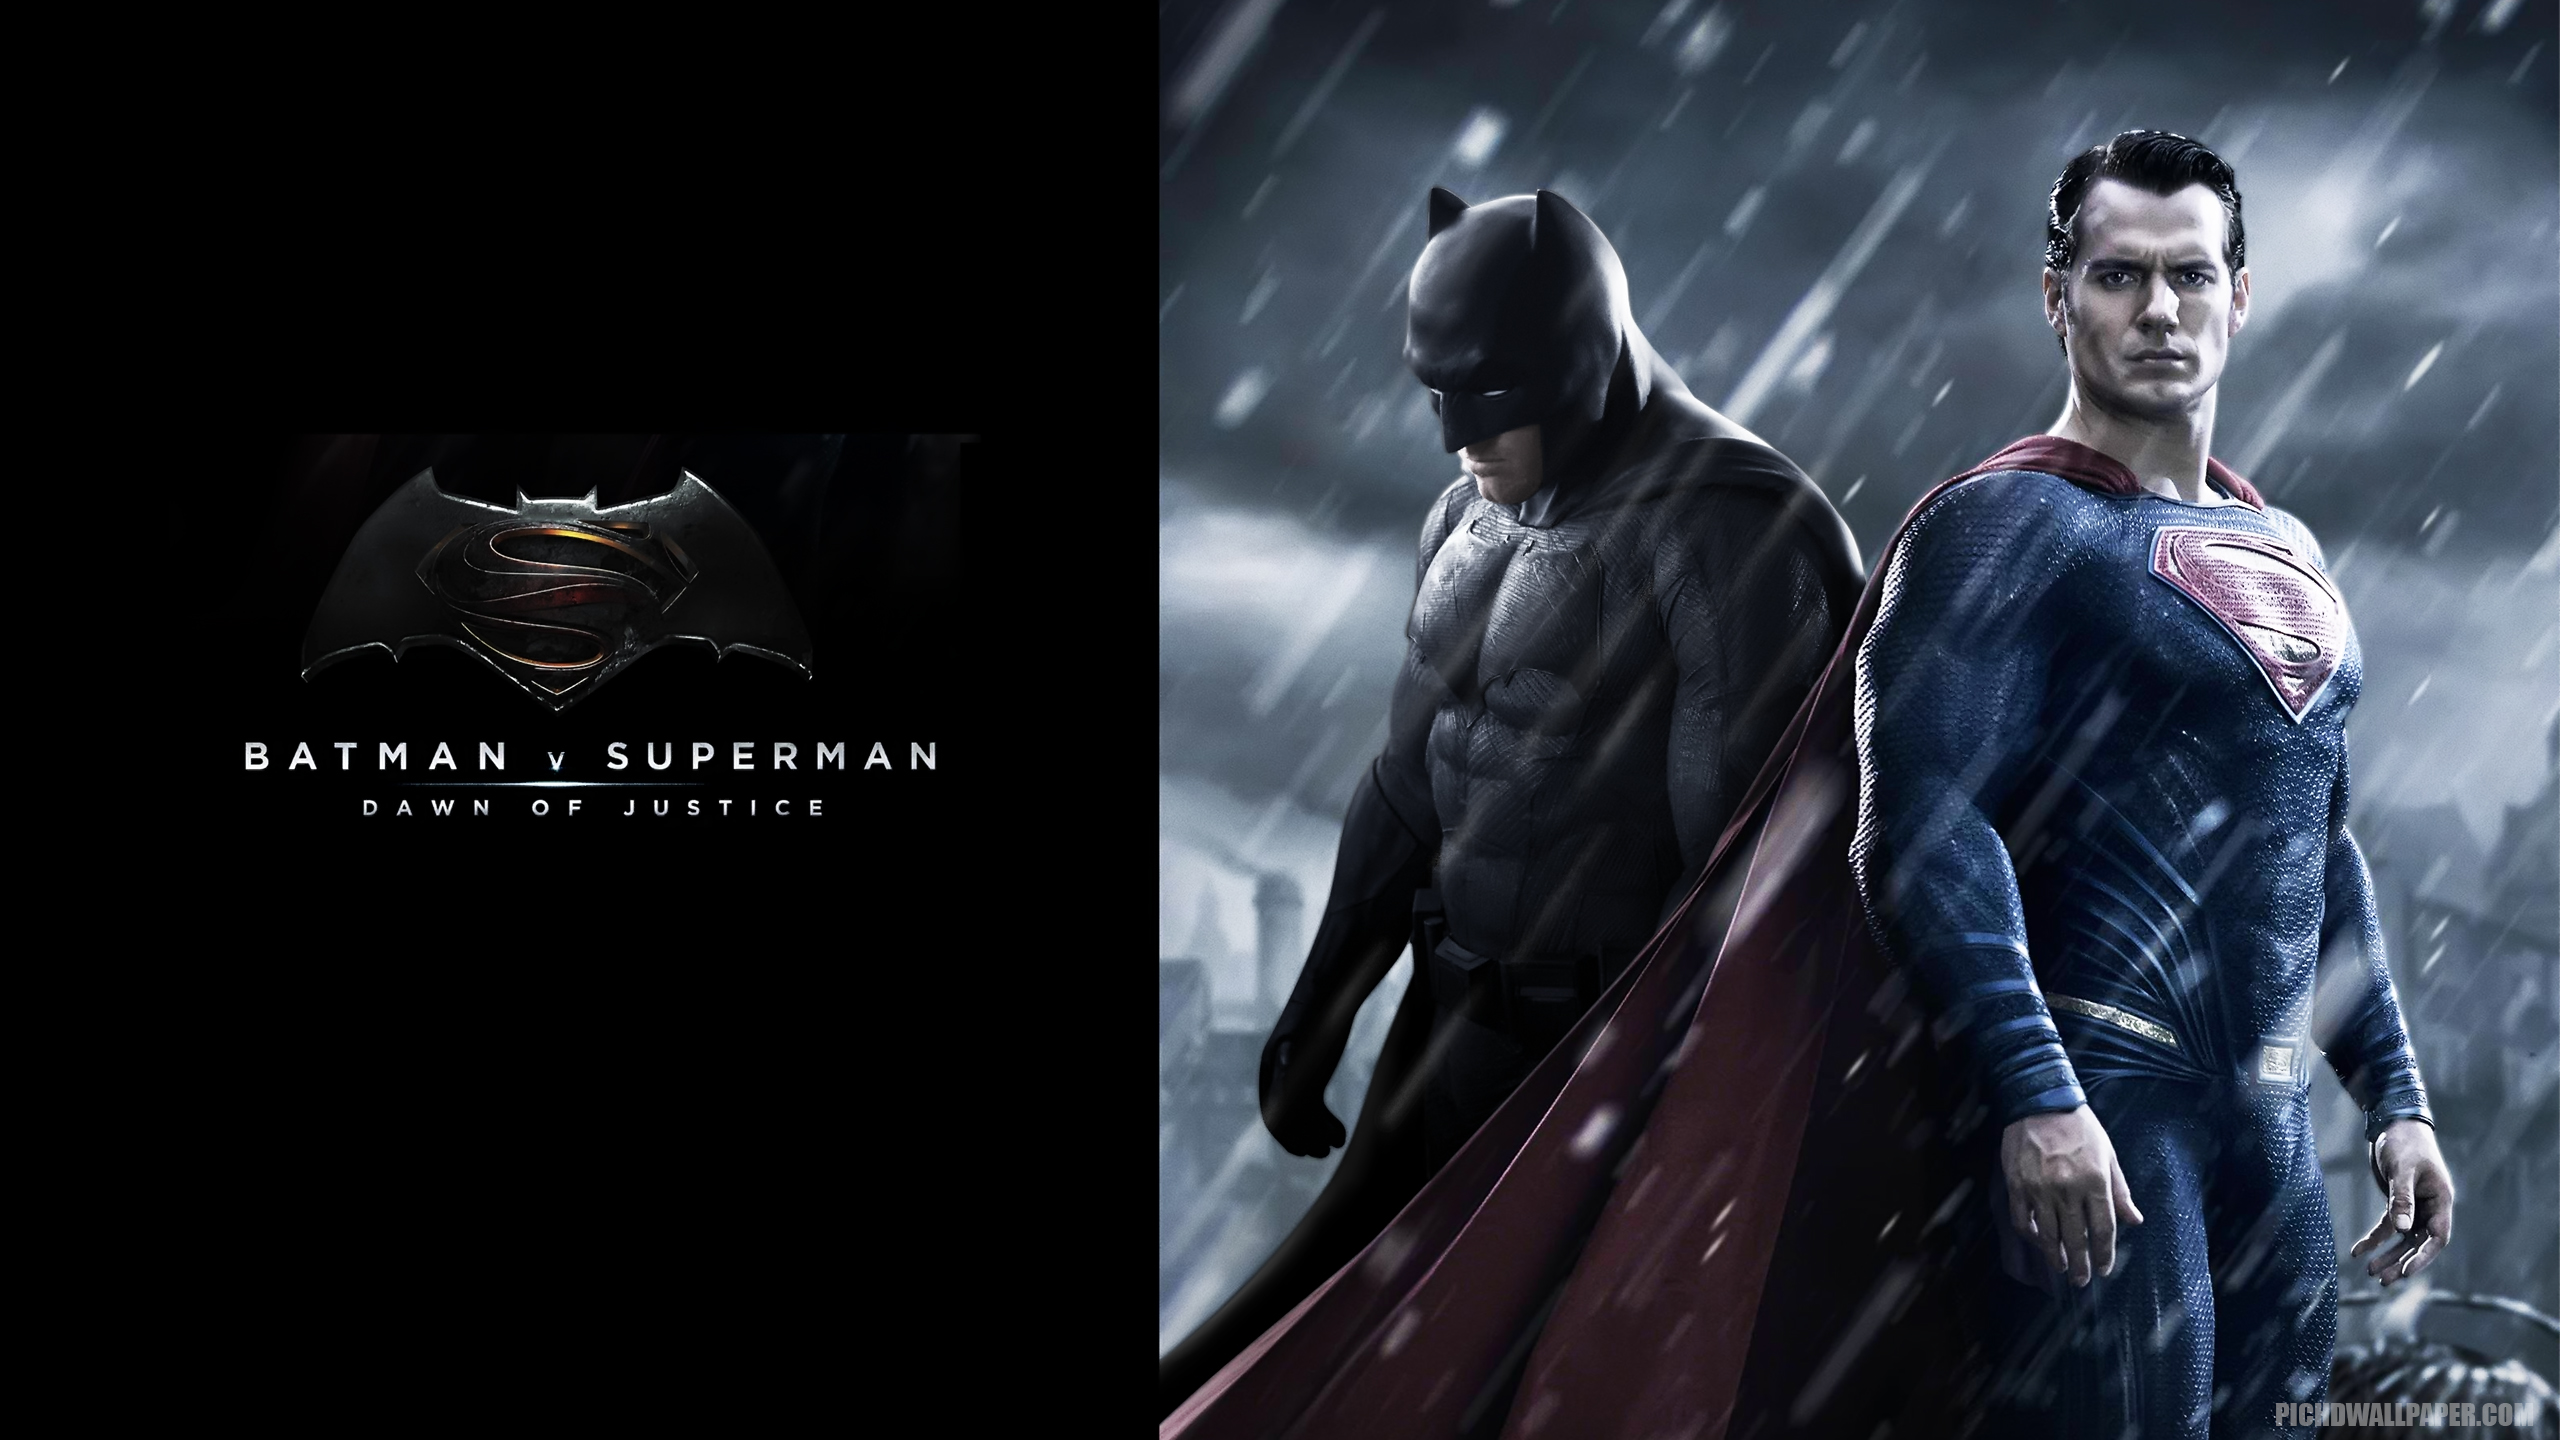 Batman vs Superman Wallpaper HD - WallpaperSafari